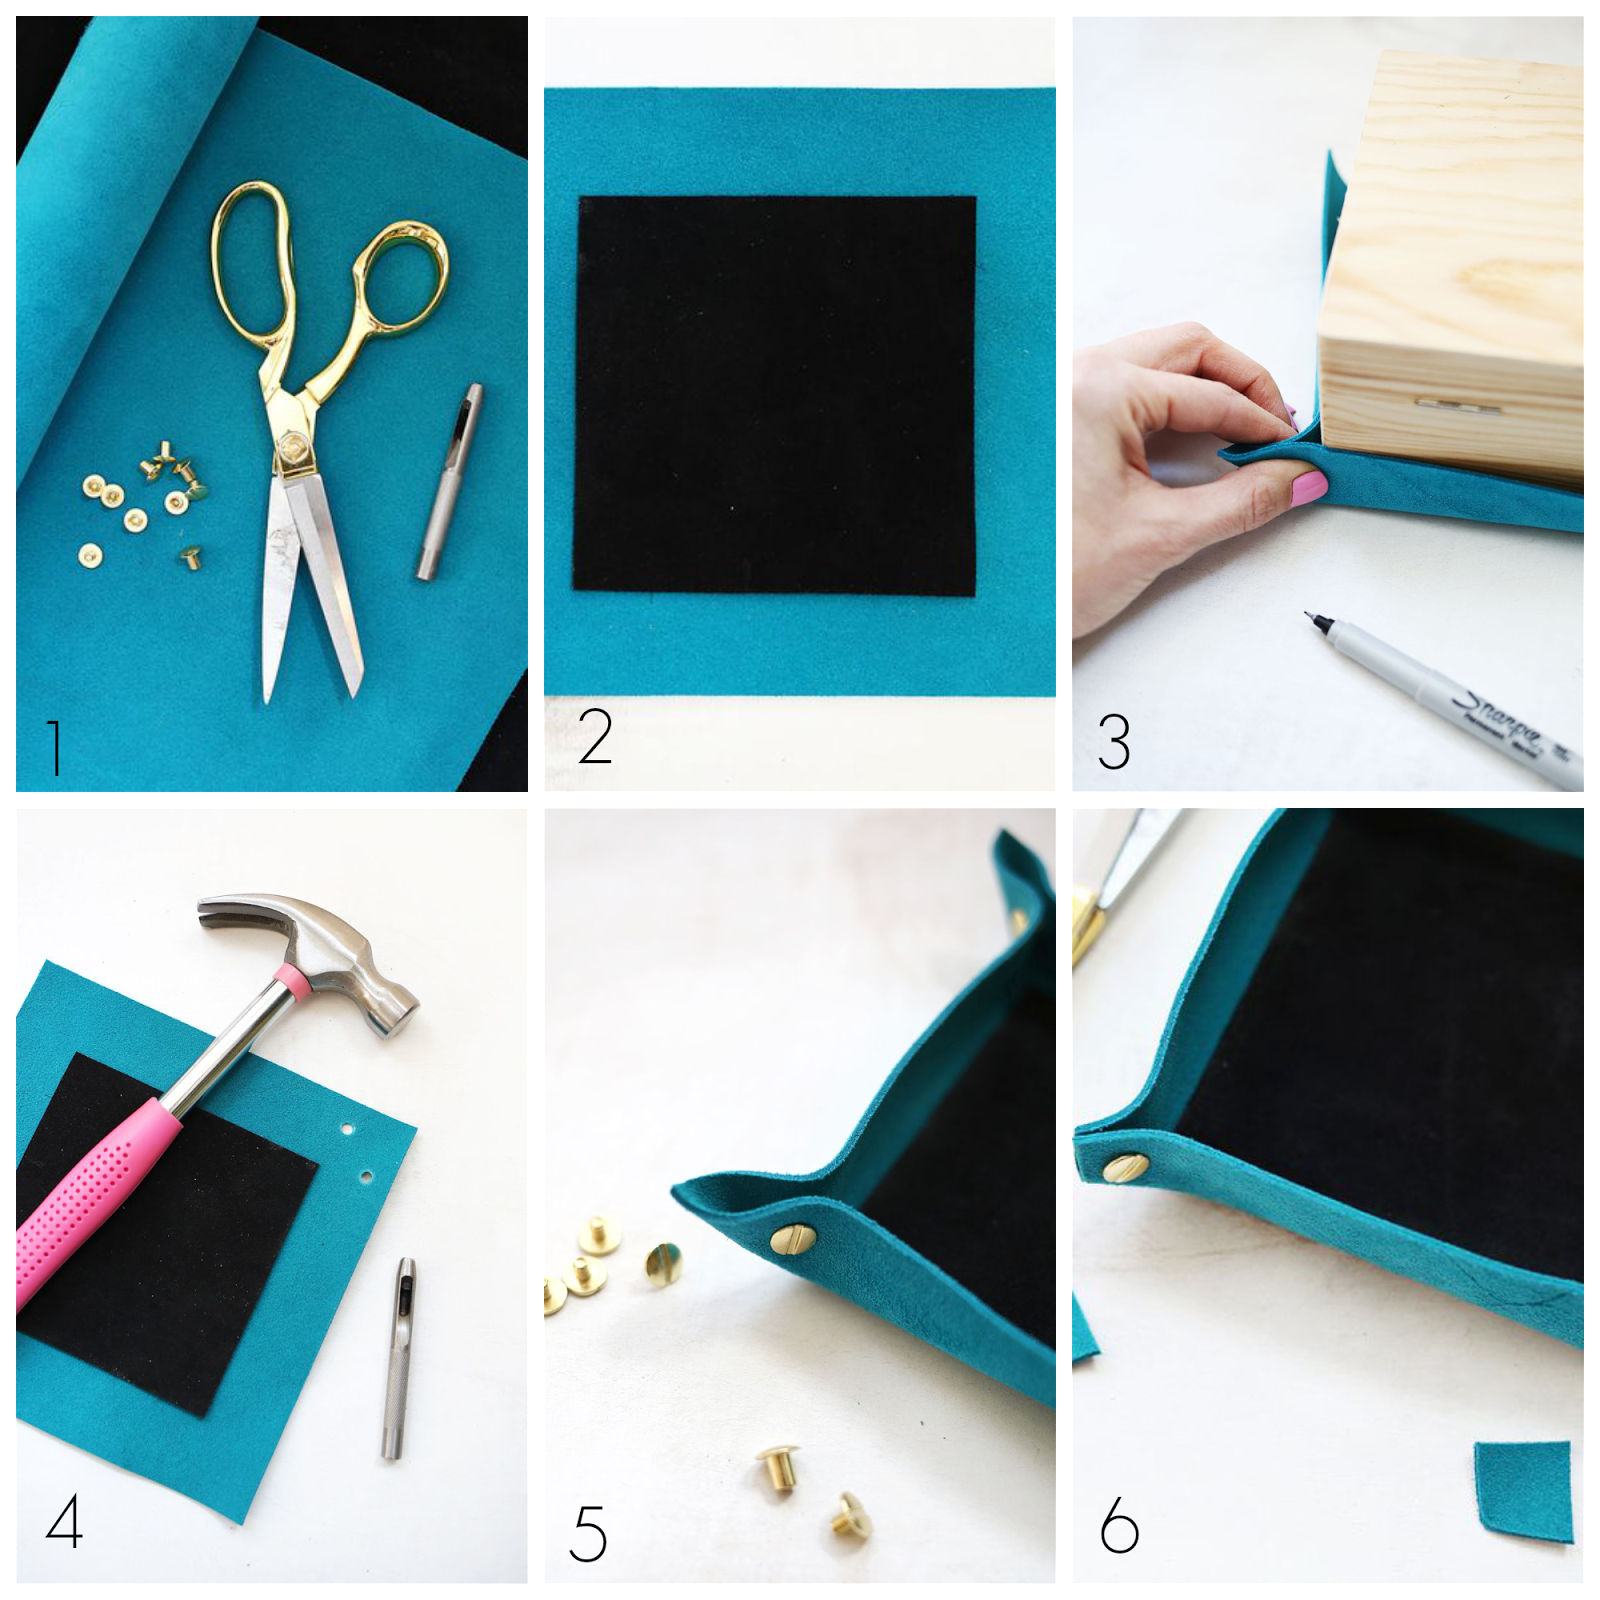 Ioanna's Notebook - DIY Coin Dish Step by Step